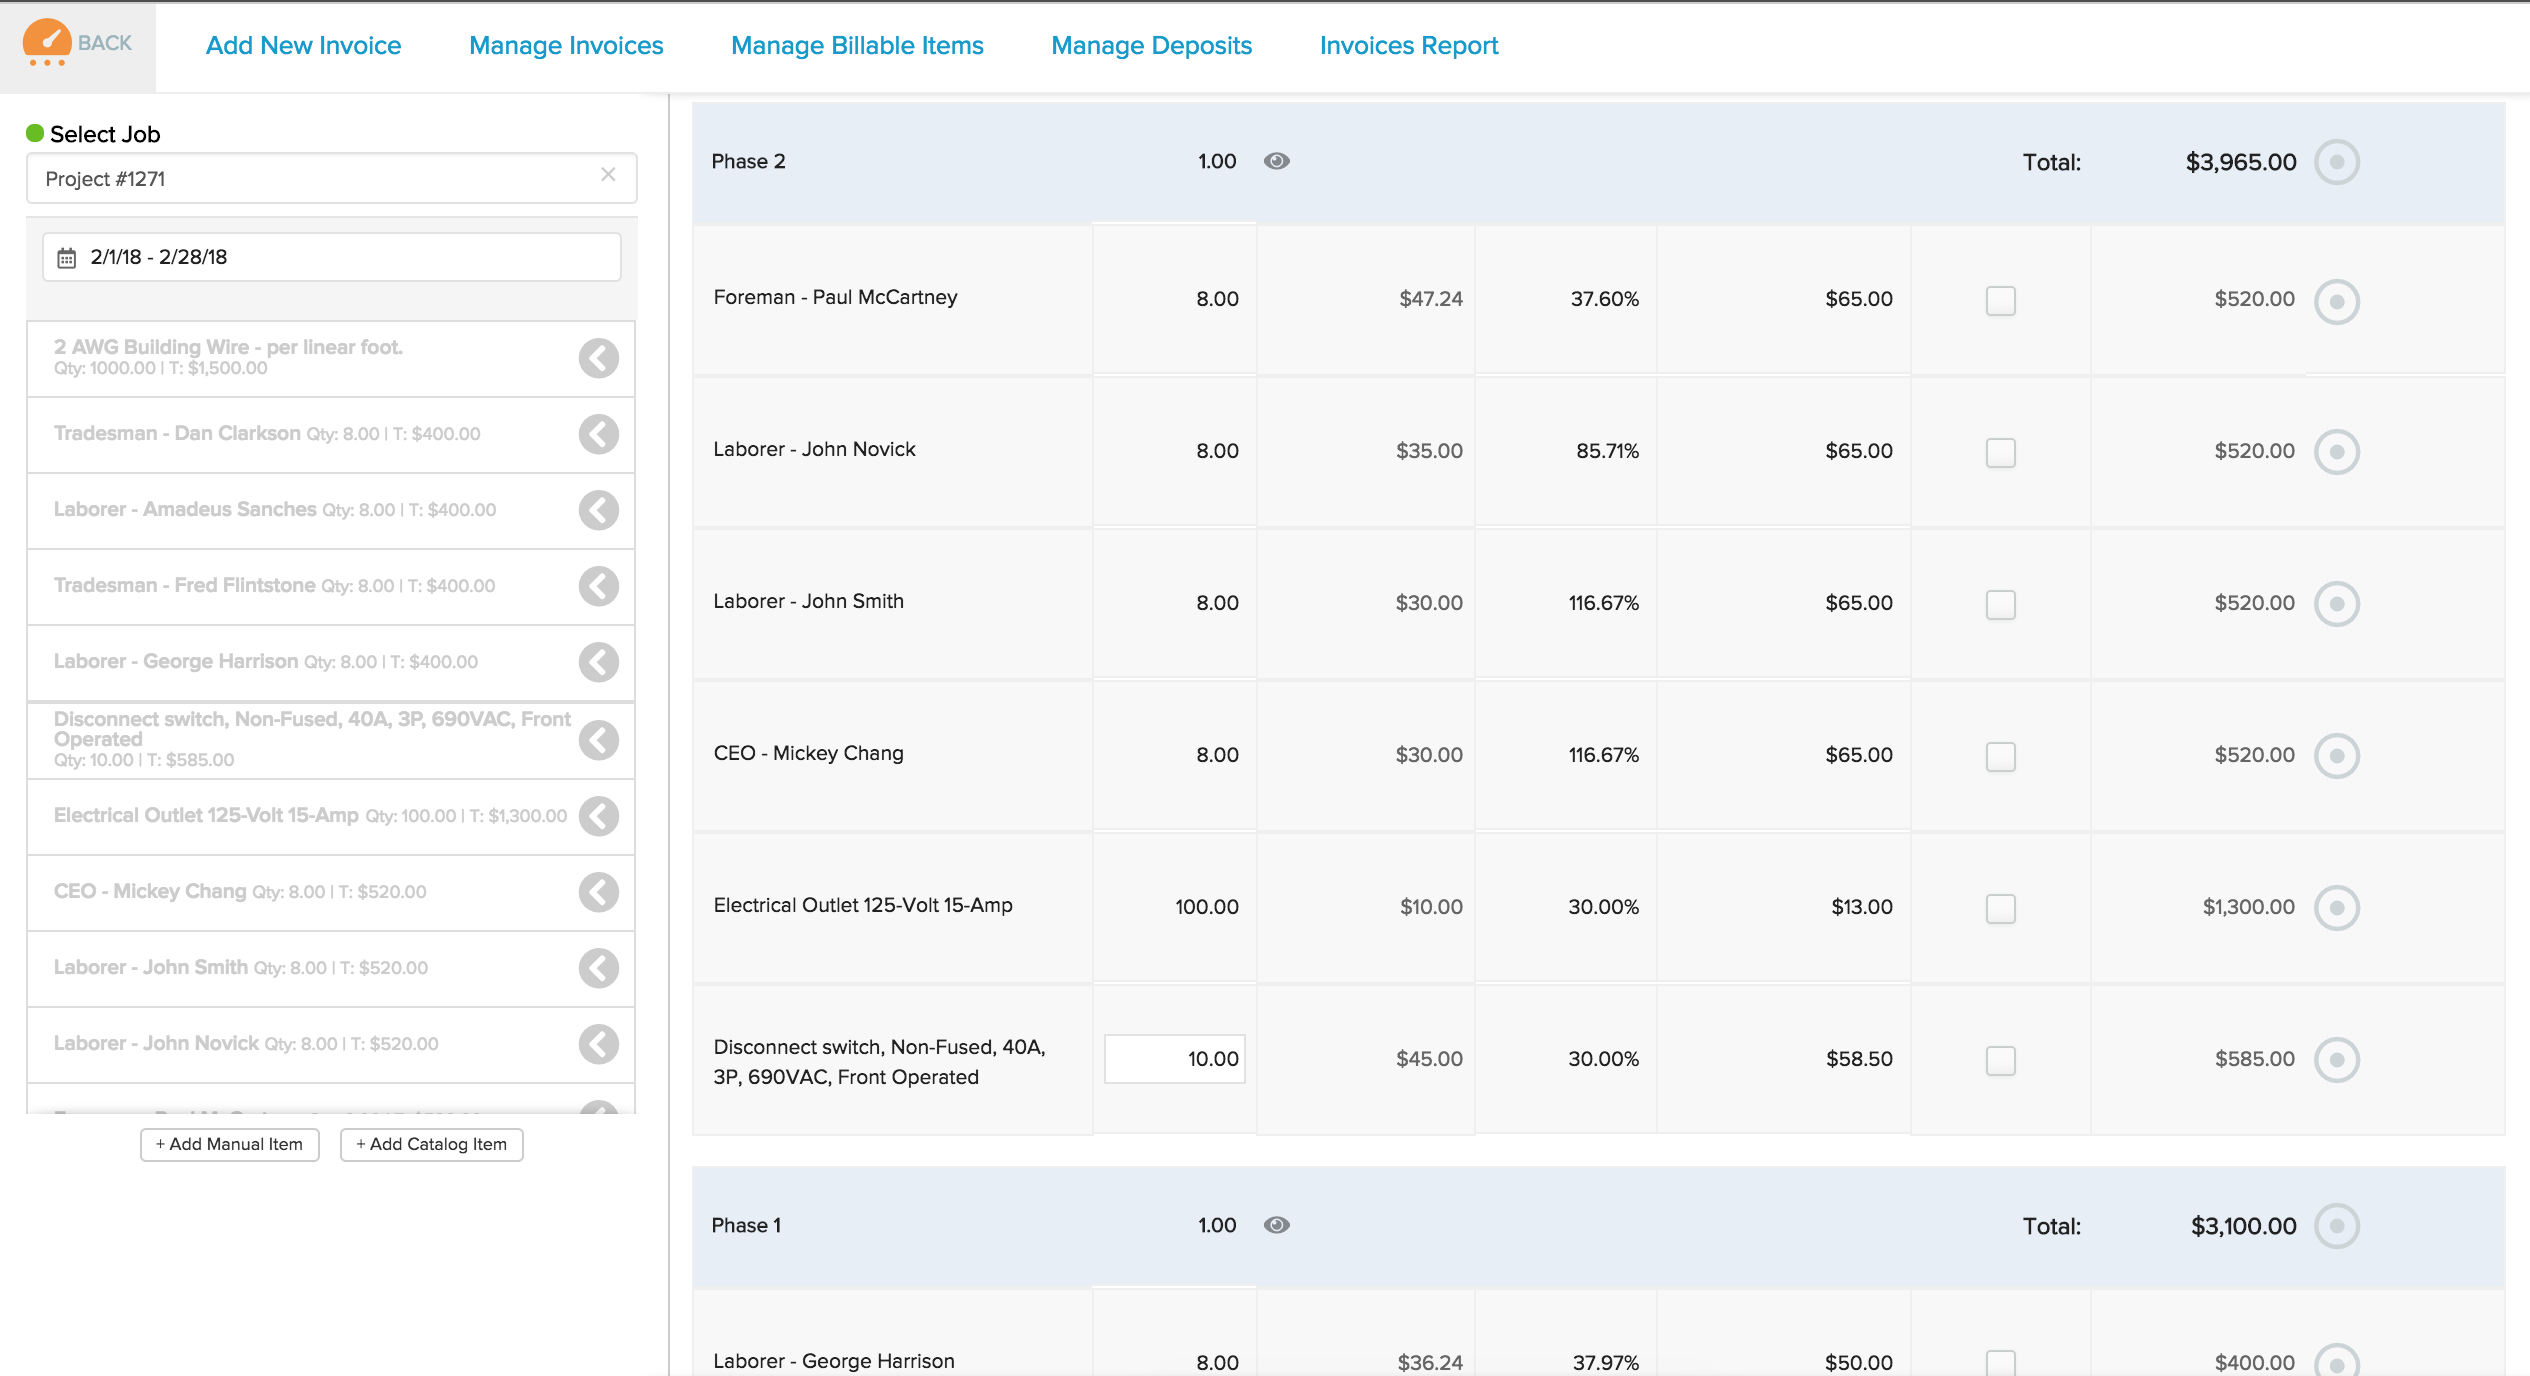 Screen-Shot-2018-02-11-at-3.48.40-PM Grouping Options on Cost Plus Invoices